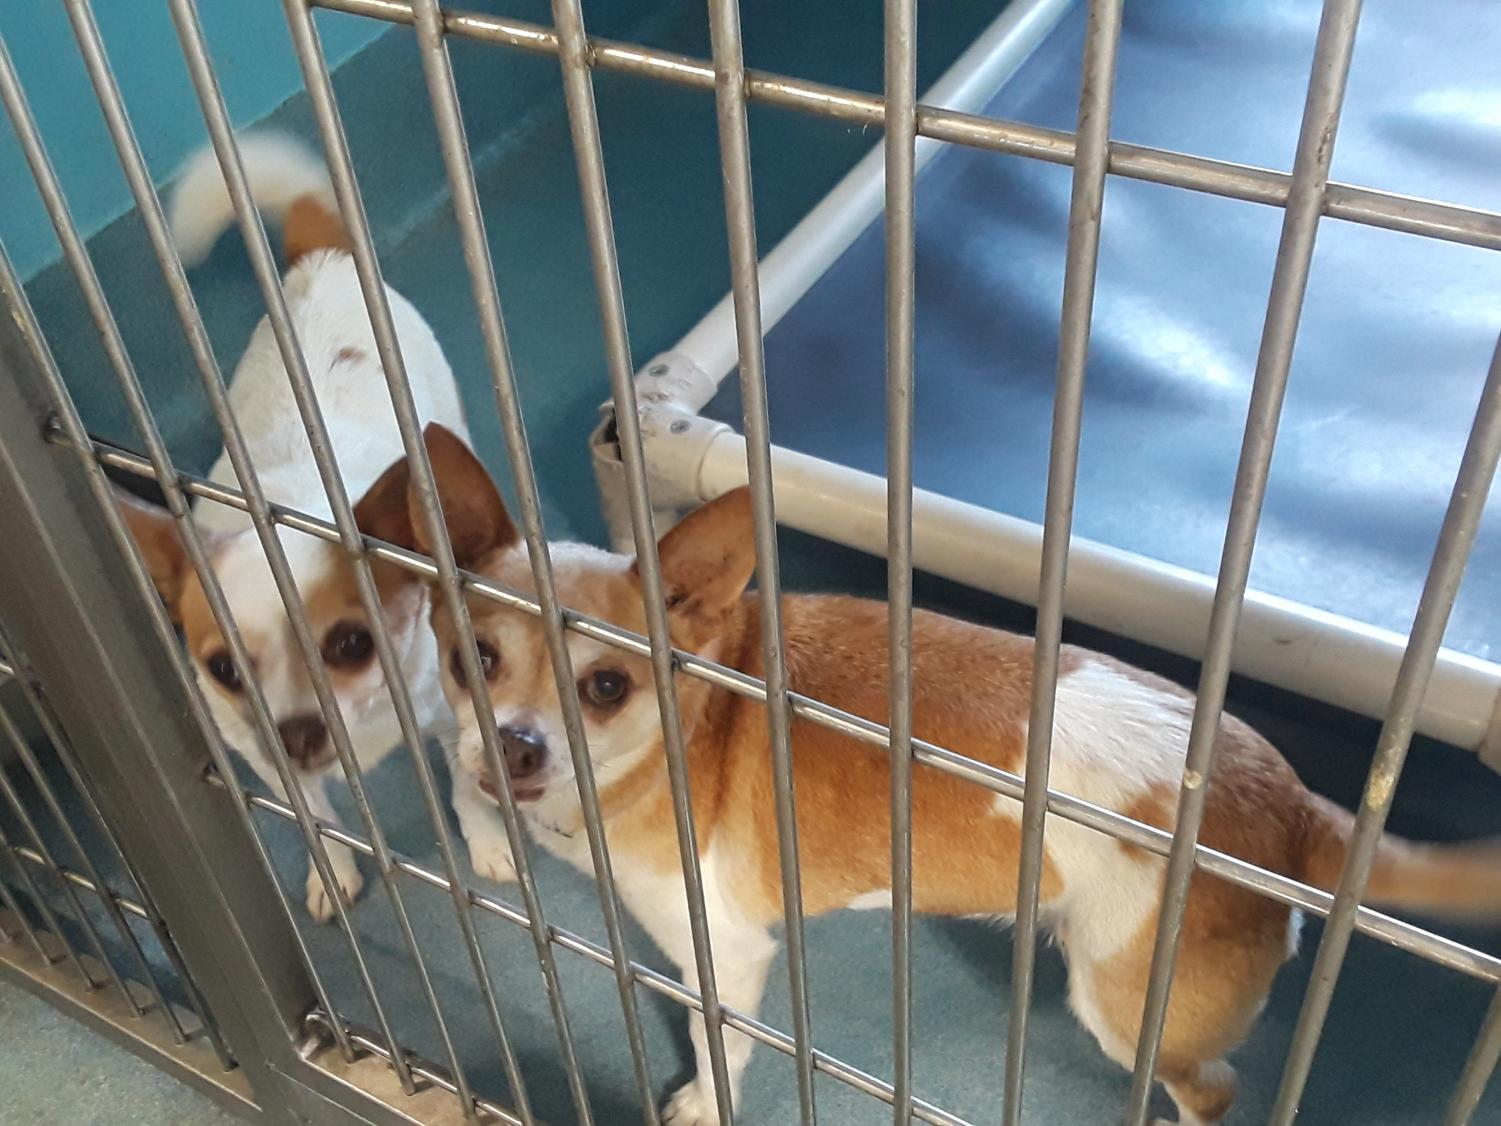 Dogs at the Baldwin Park shelter observe visitors.